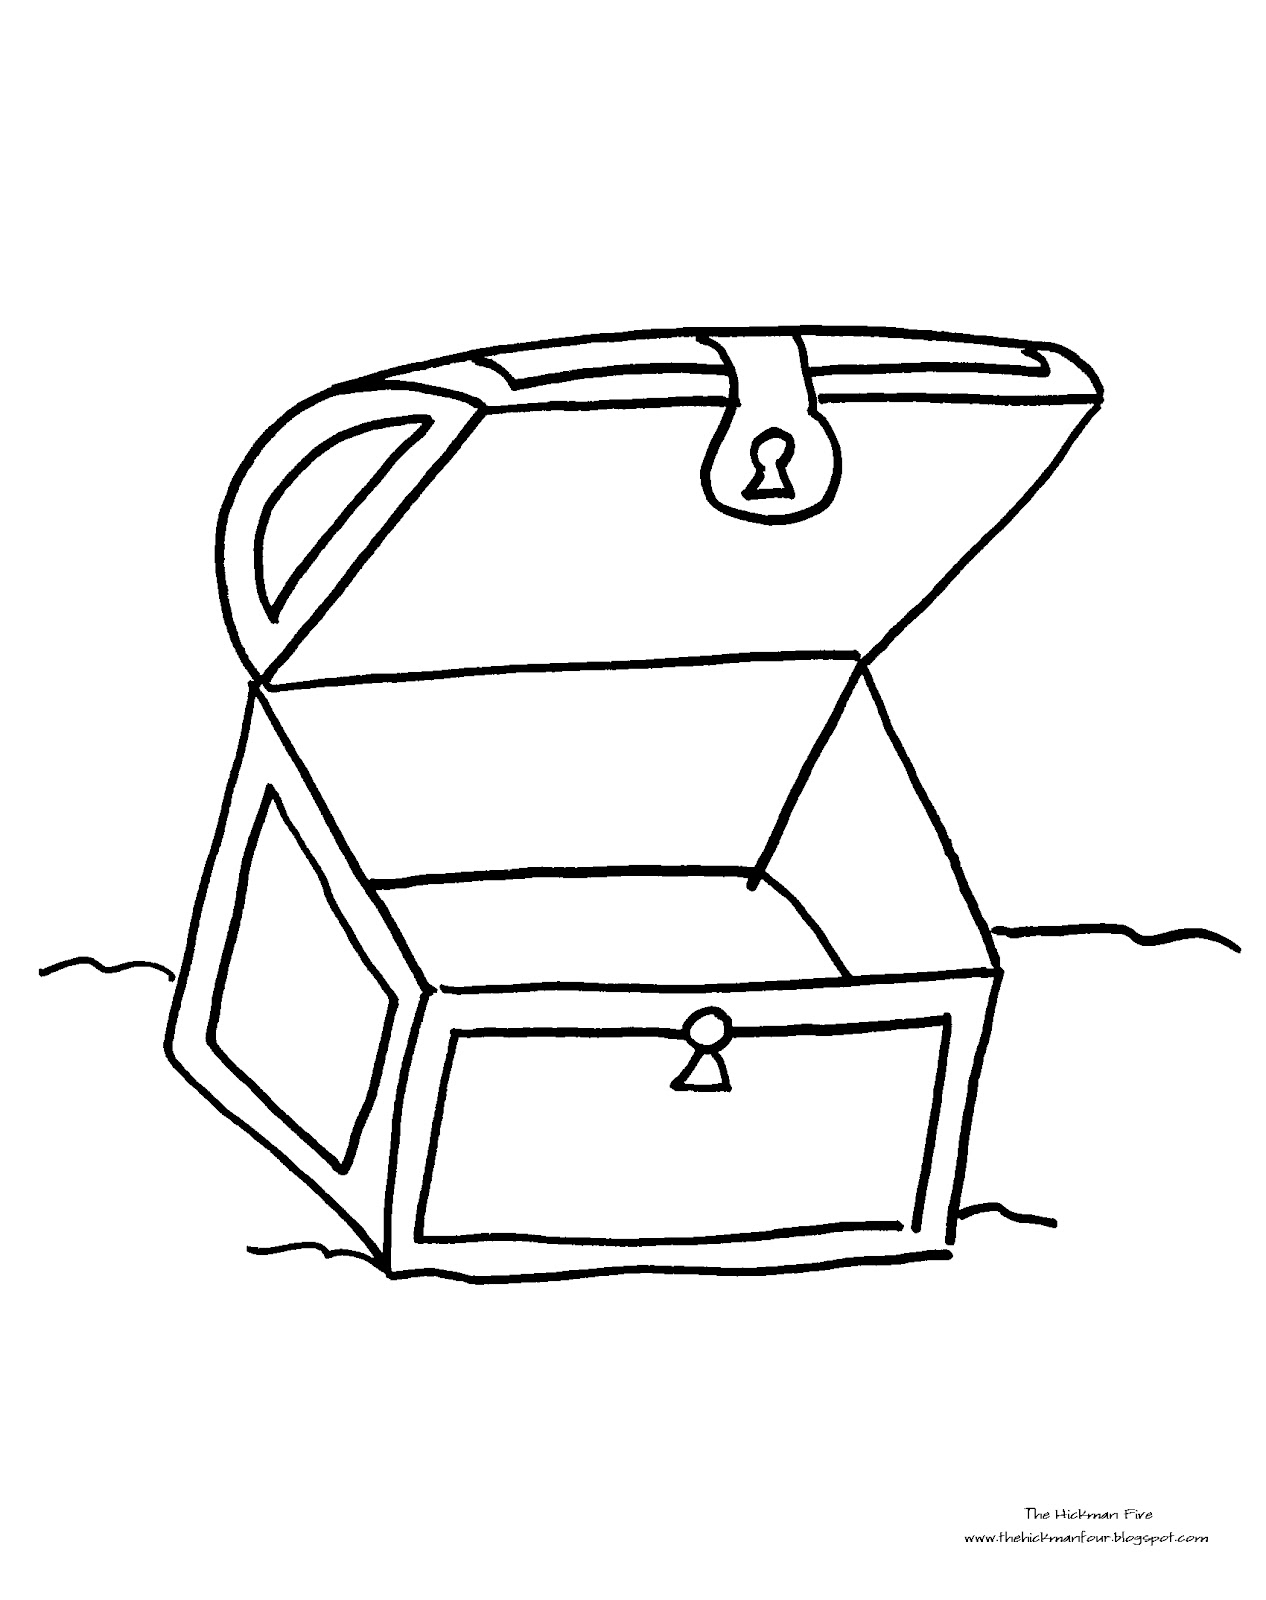 Empty Treasure Chest Coloring Page http://www.h5cp.blogspot.com/2012/07/coloring-pages-pirates.html